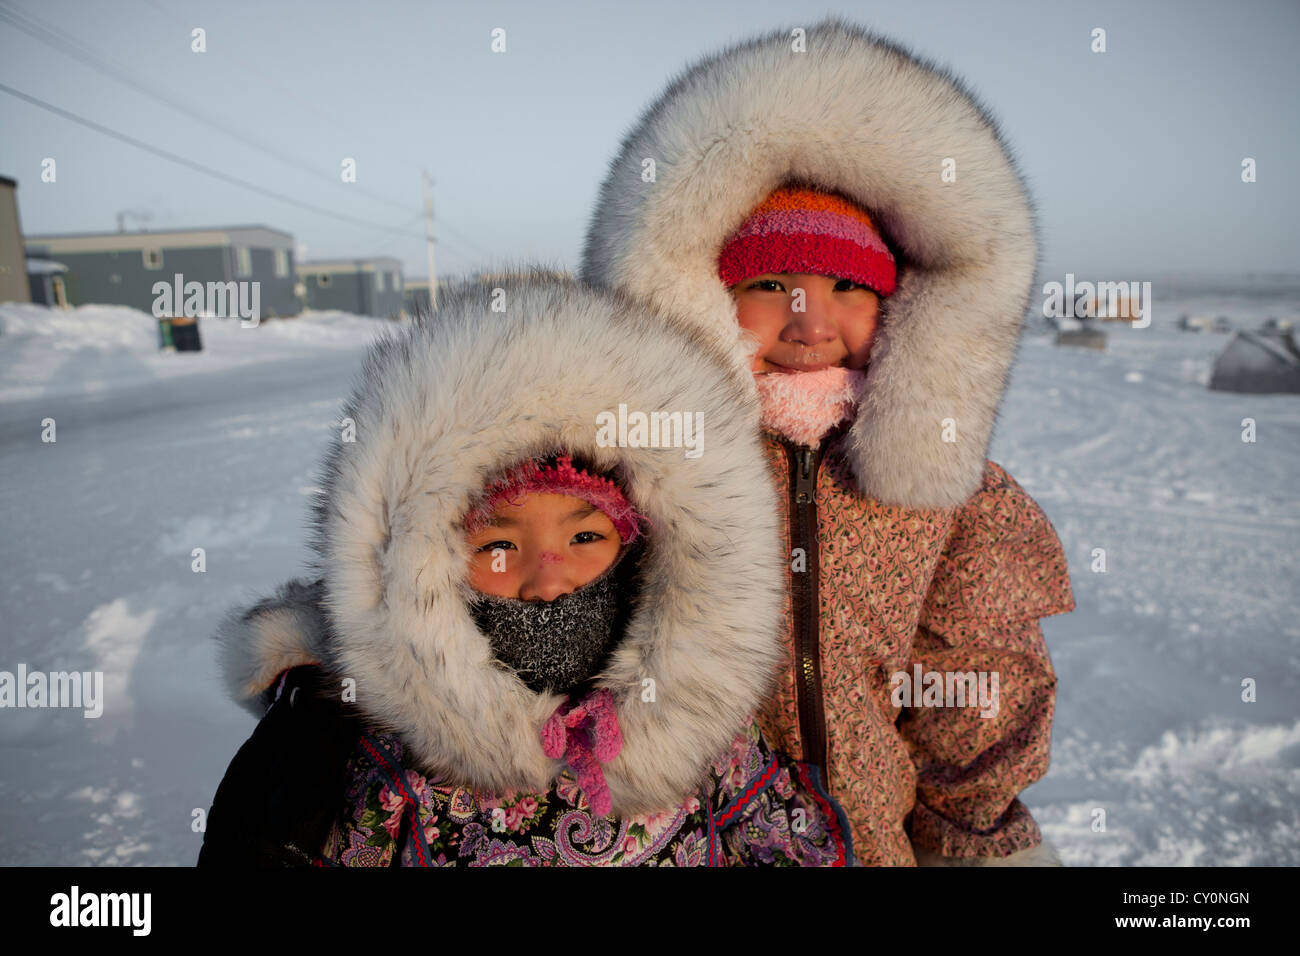 Inuit girls at the northpole - Stock Image